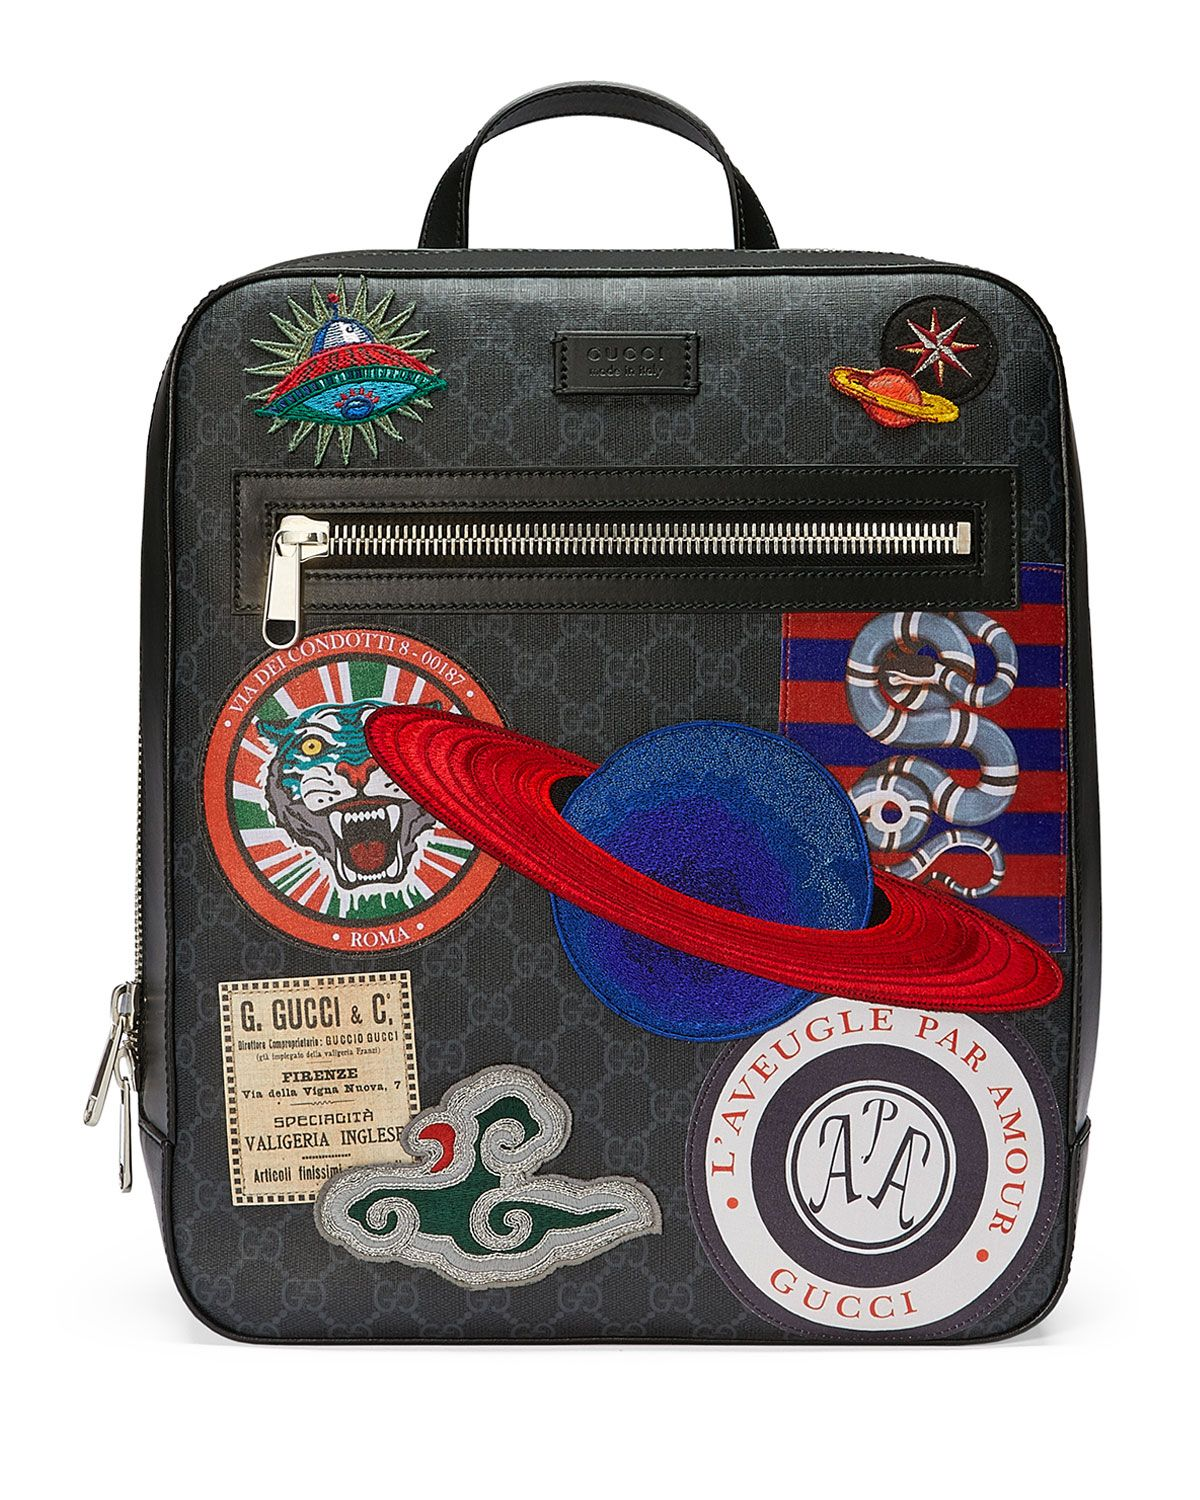 Gucci GG Supreme Backpack with Travel Patches Hommes Gucci, Sacs À Main  Gucci, Sacs a05be49489d